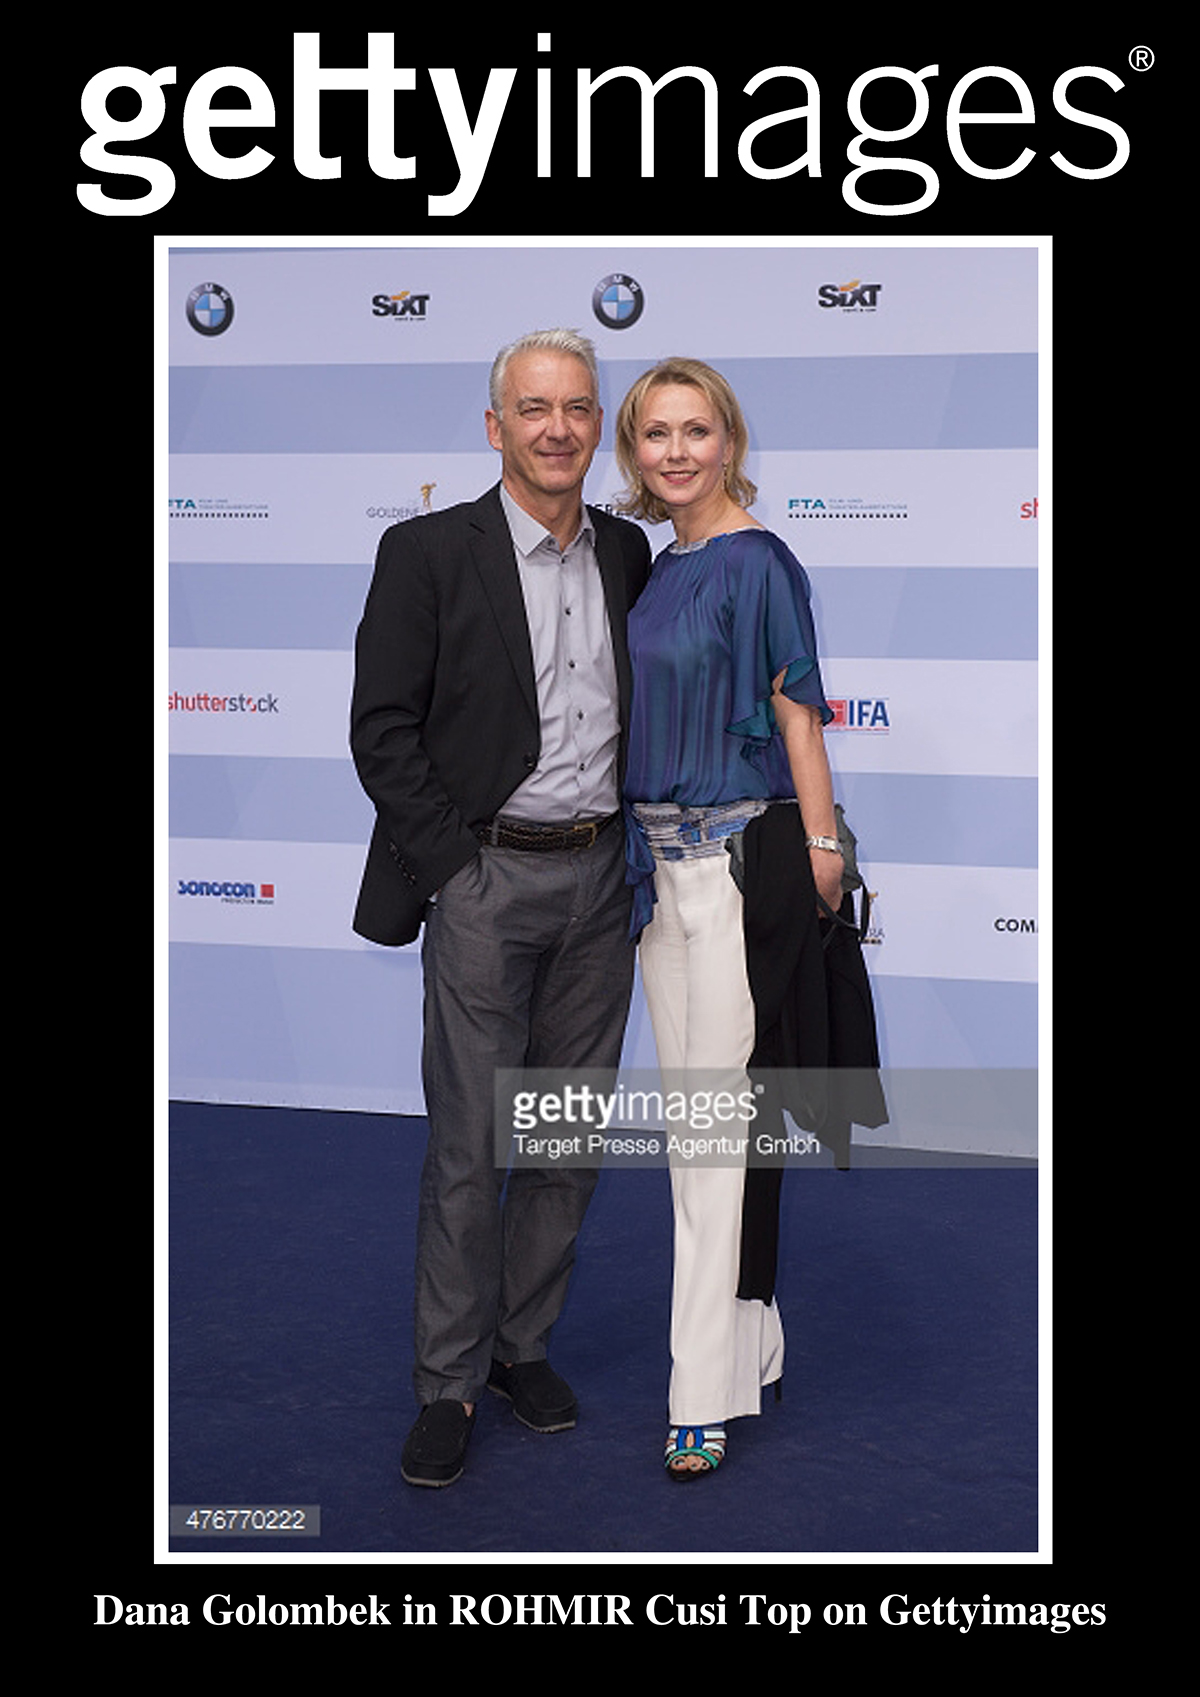 Dana-Golombek-in-ROHMIR-Cusi-Top-on-Gettyimages